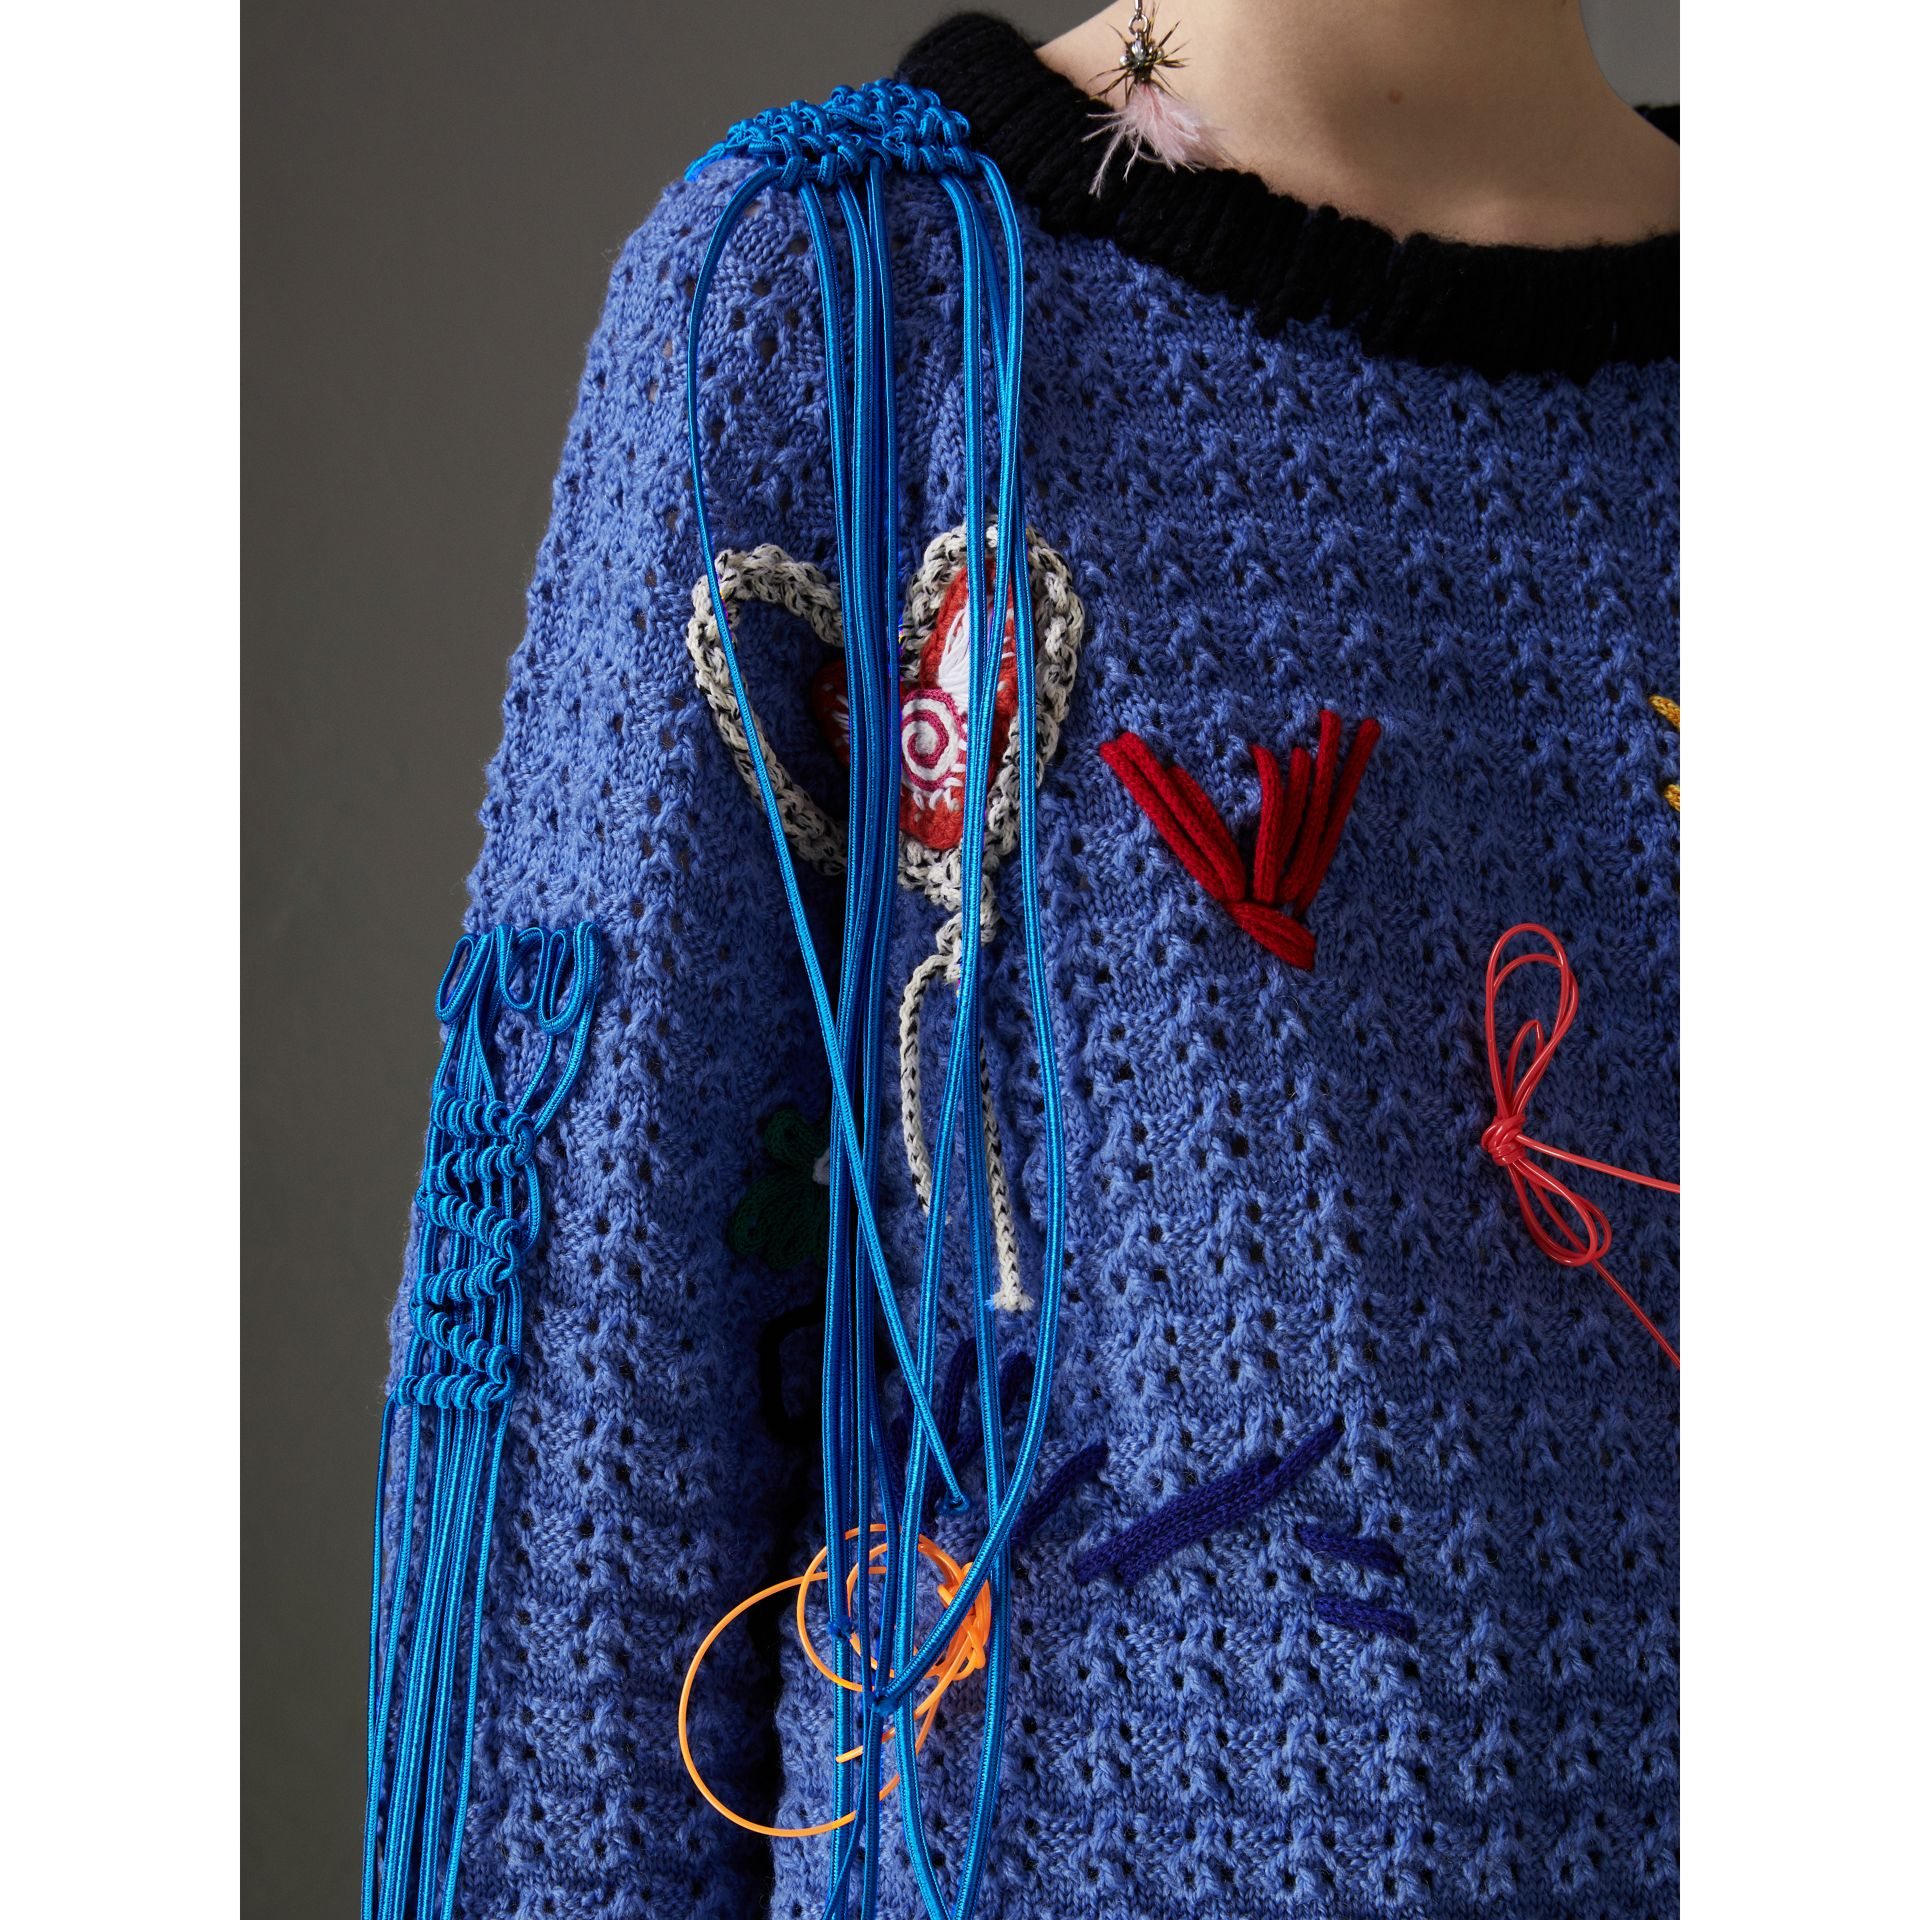 Embellished Wool Lace Sweater in Blue - Women | Burberry Hong Kong - gallery image 1